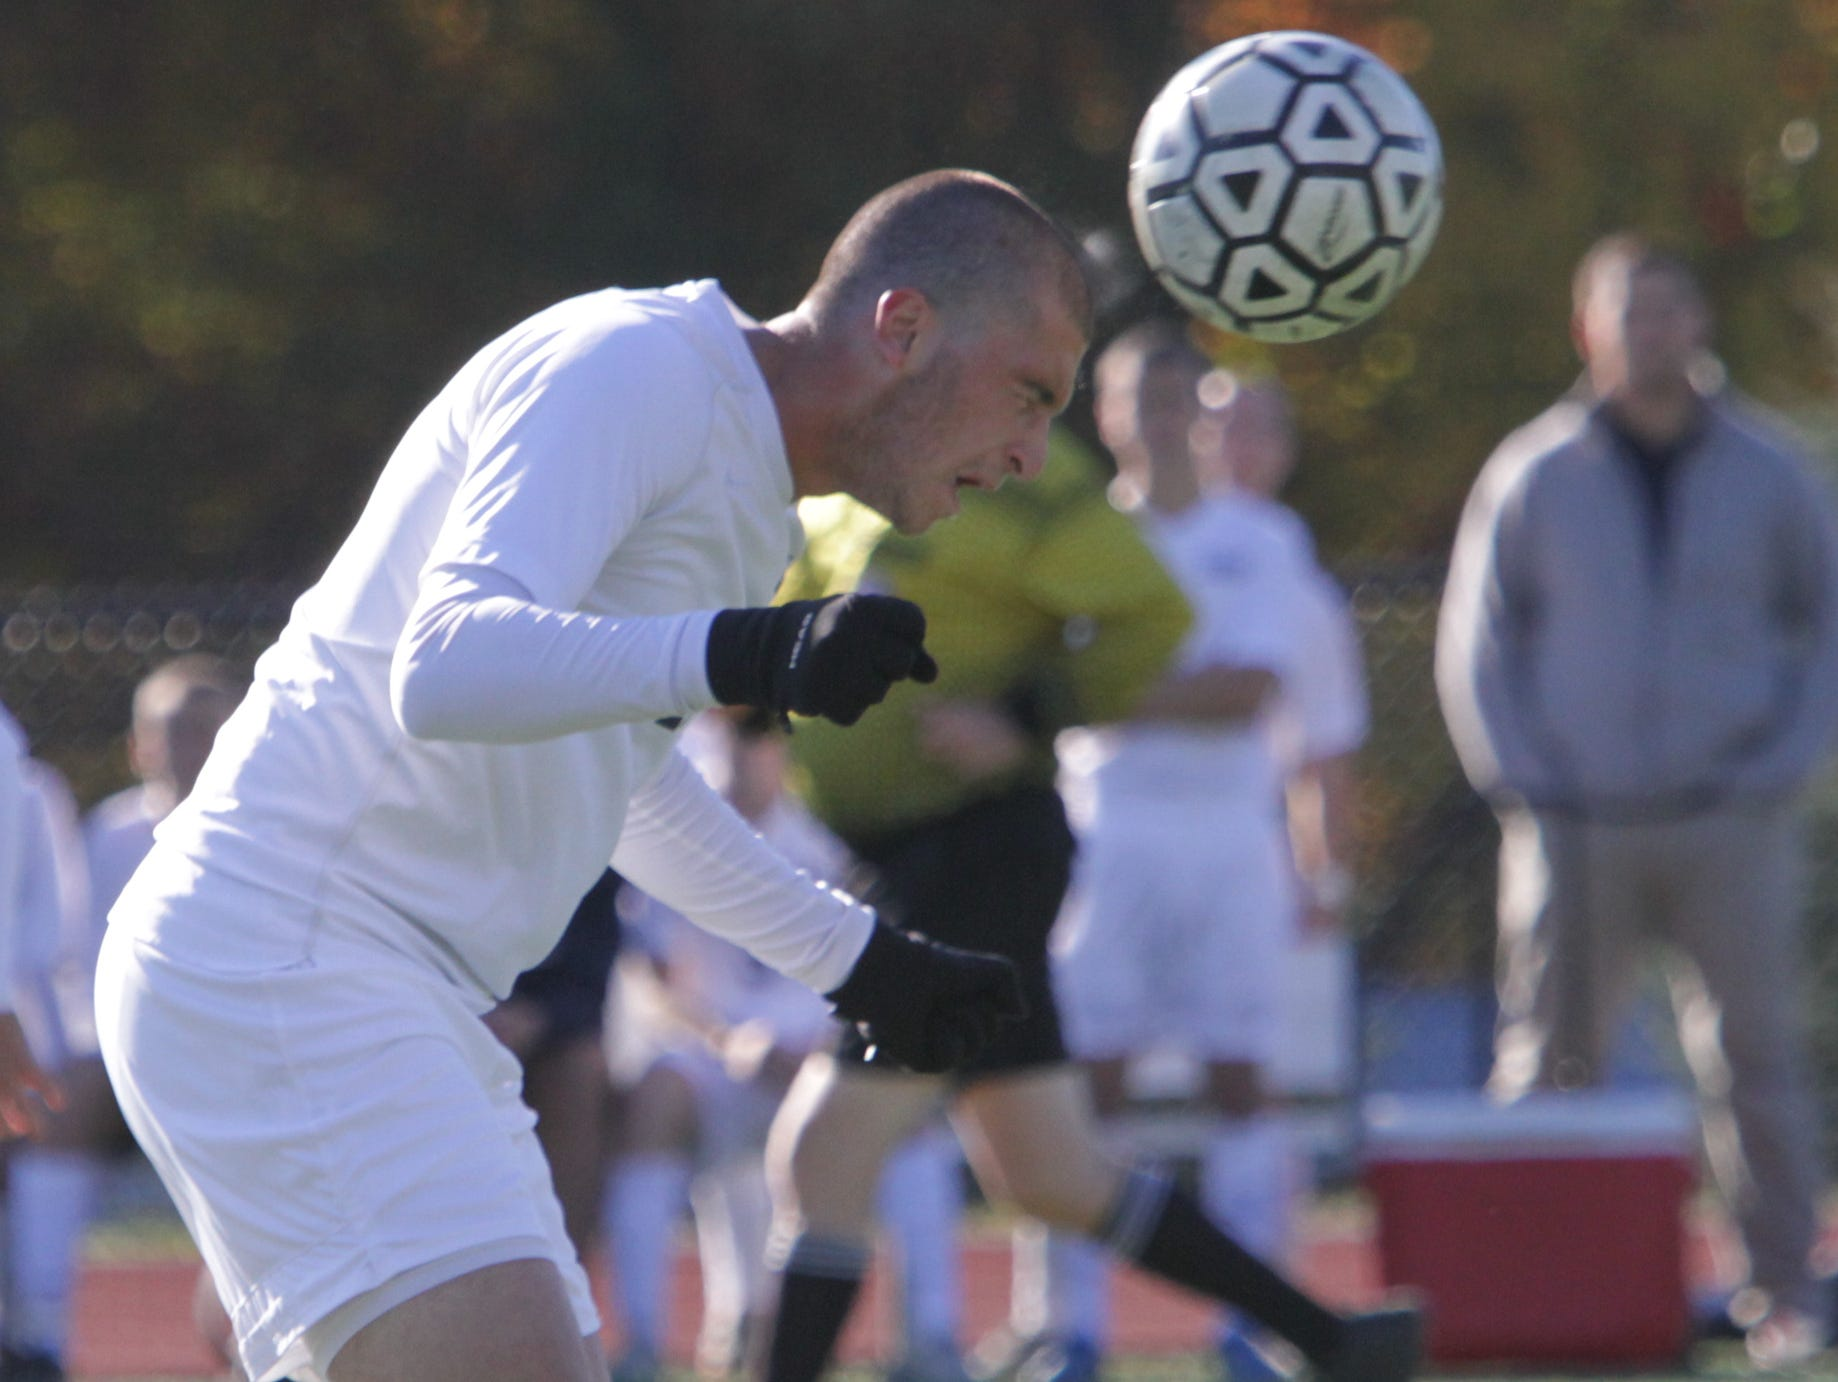 Game action as Pelham is hosted by Byram Hills during their boys soccer quarterfinal Class A game at Byram Hoills High School in Armonk Oct. 26, 2015.